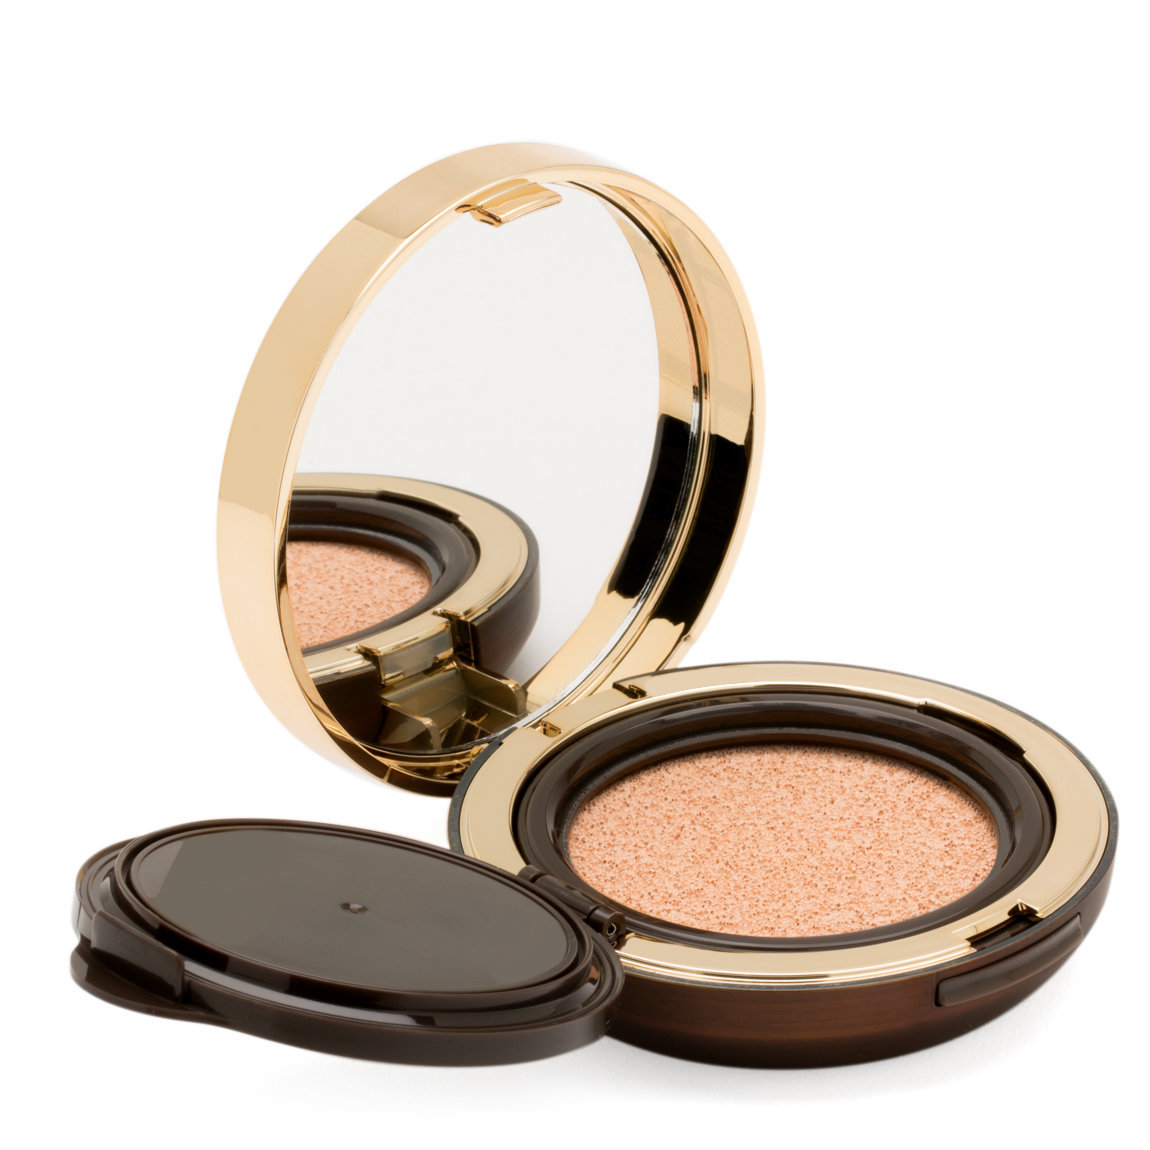 Sulwhasoo Perfecting Cushion Intense No. 11 Pale Pink